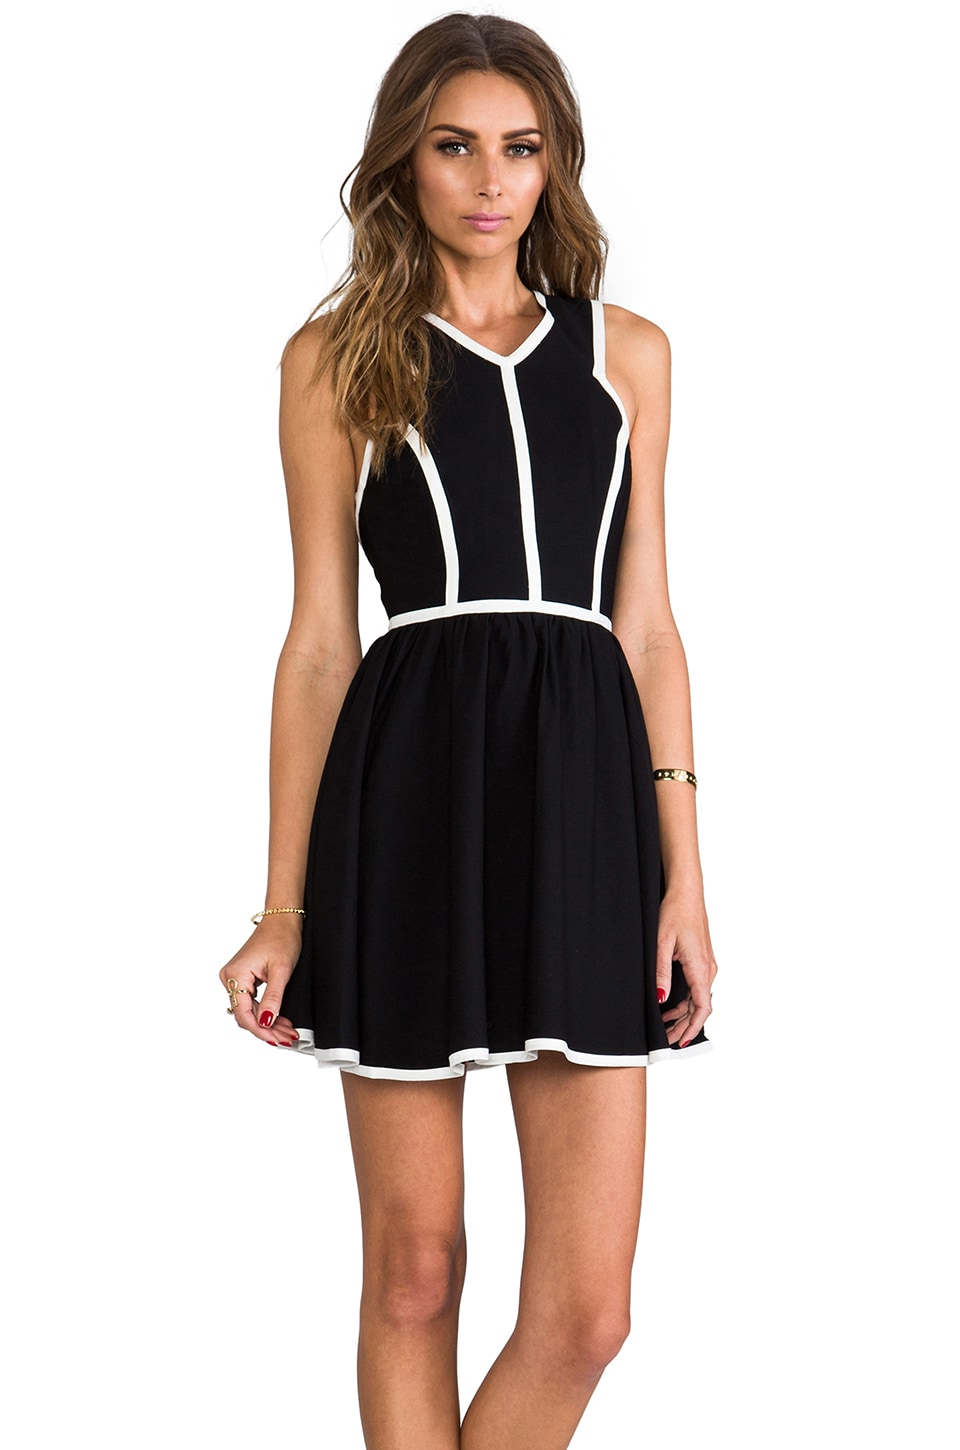 keepsake Flash Back Dress in Black/Ivory